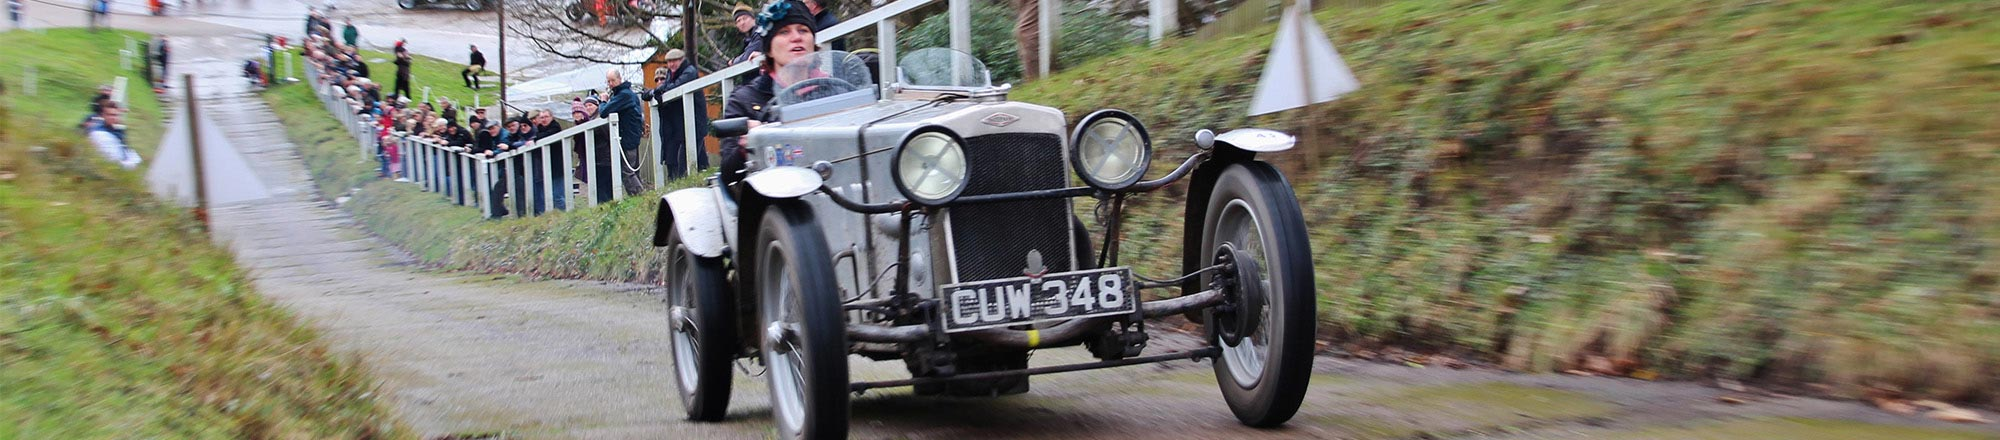 VSCC driving tests Test Hill slider.jpg